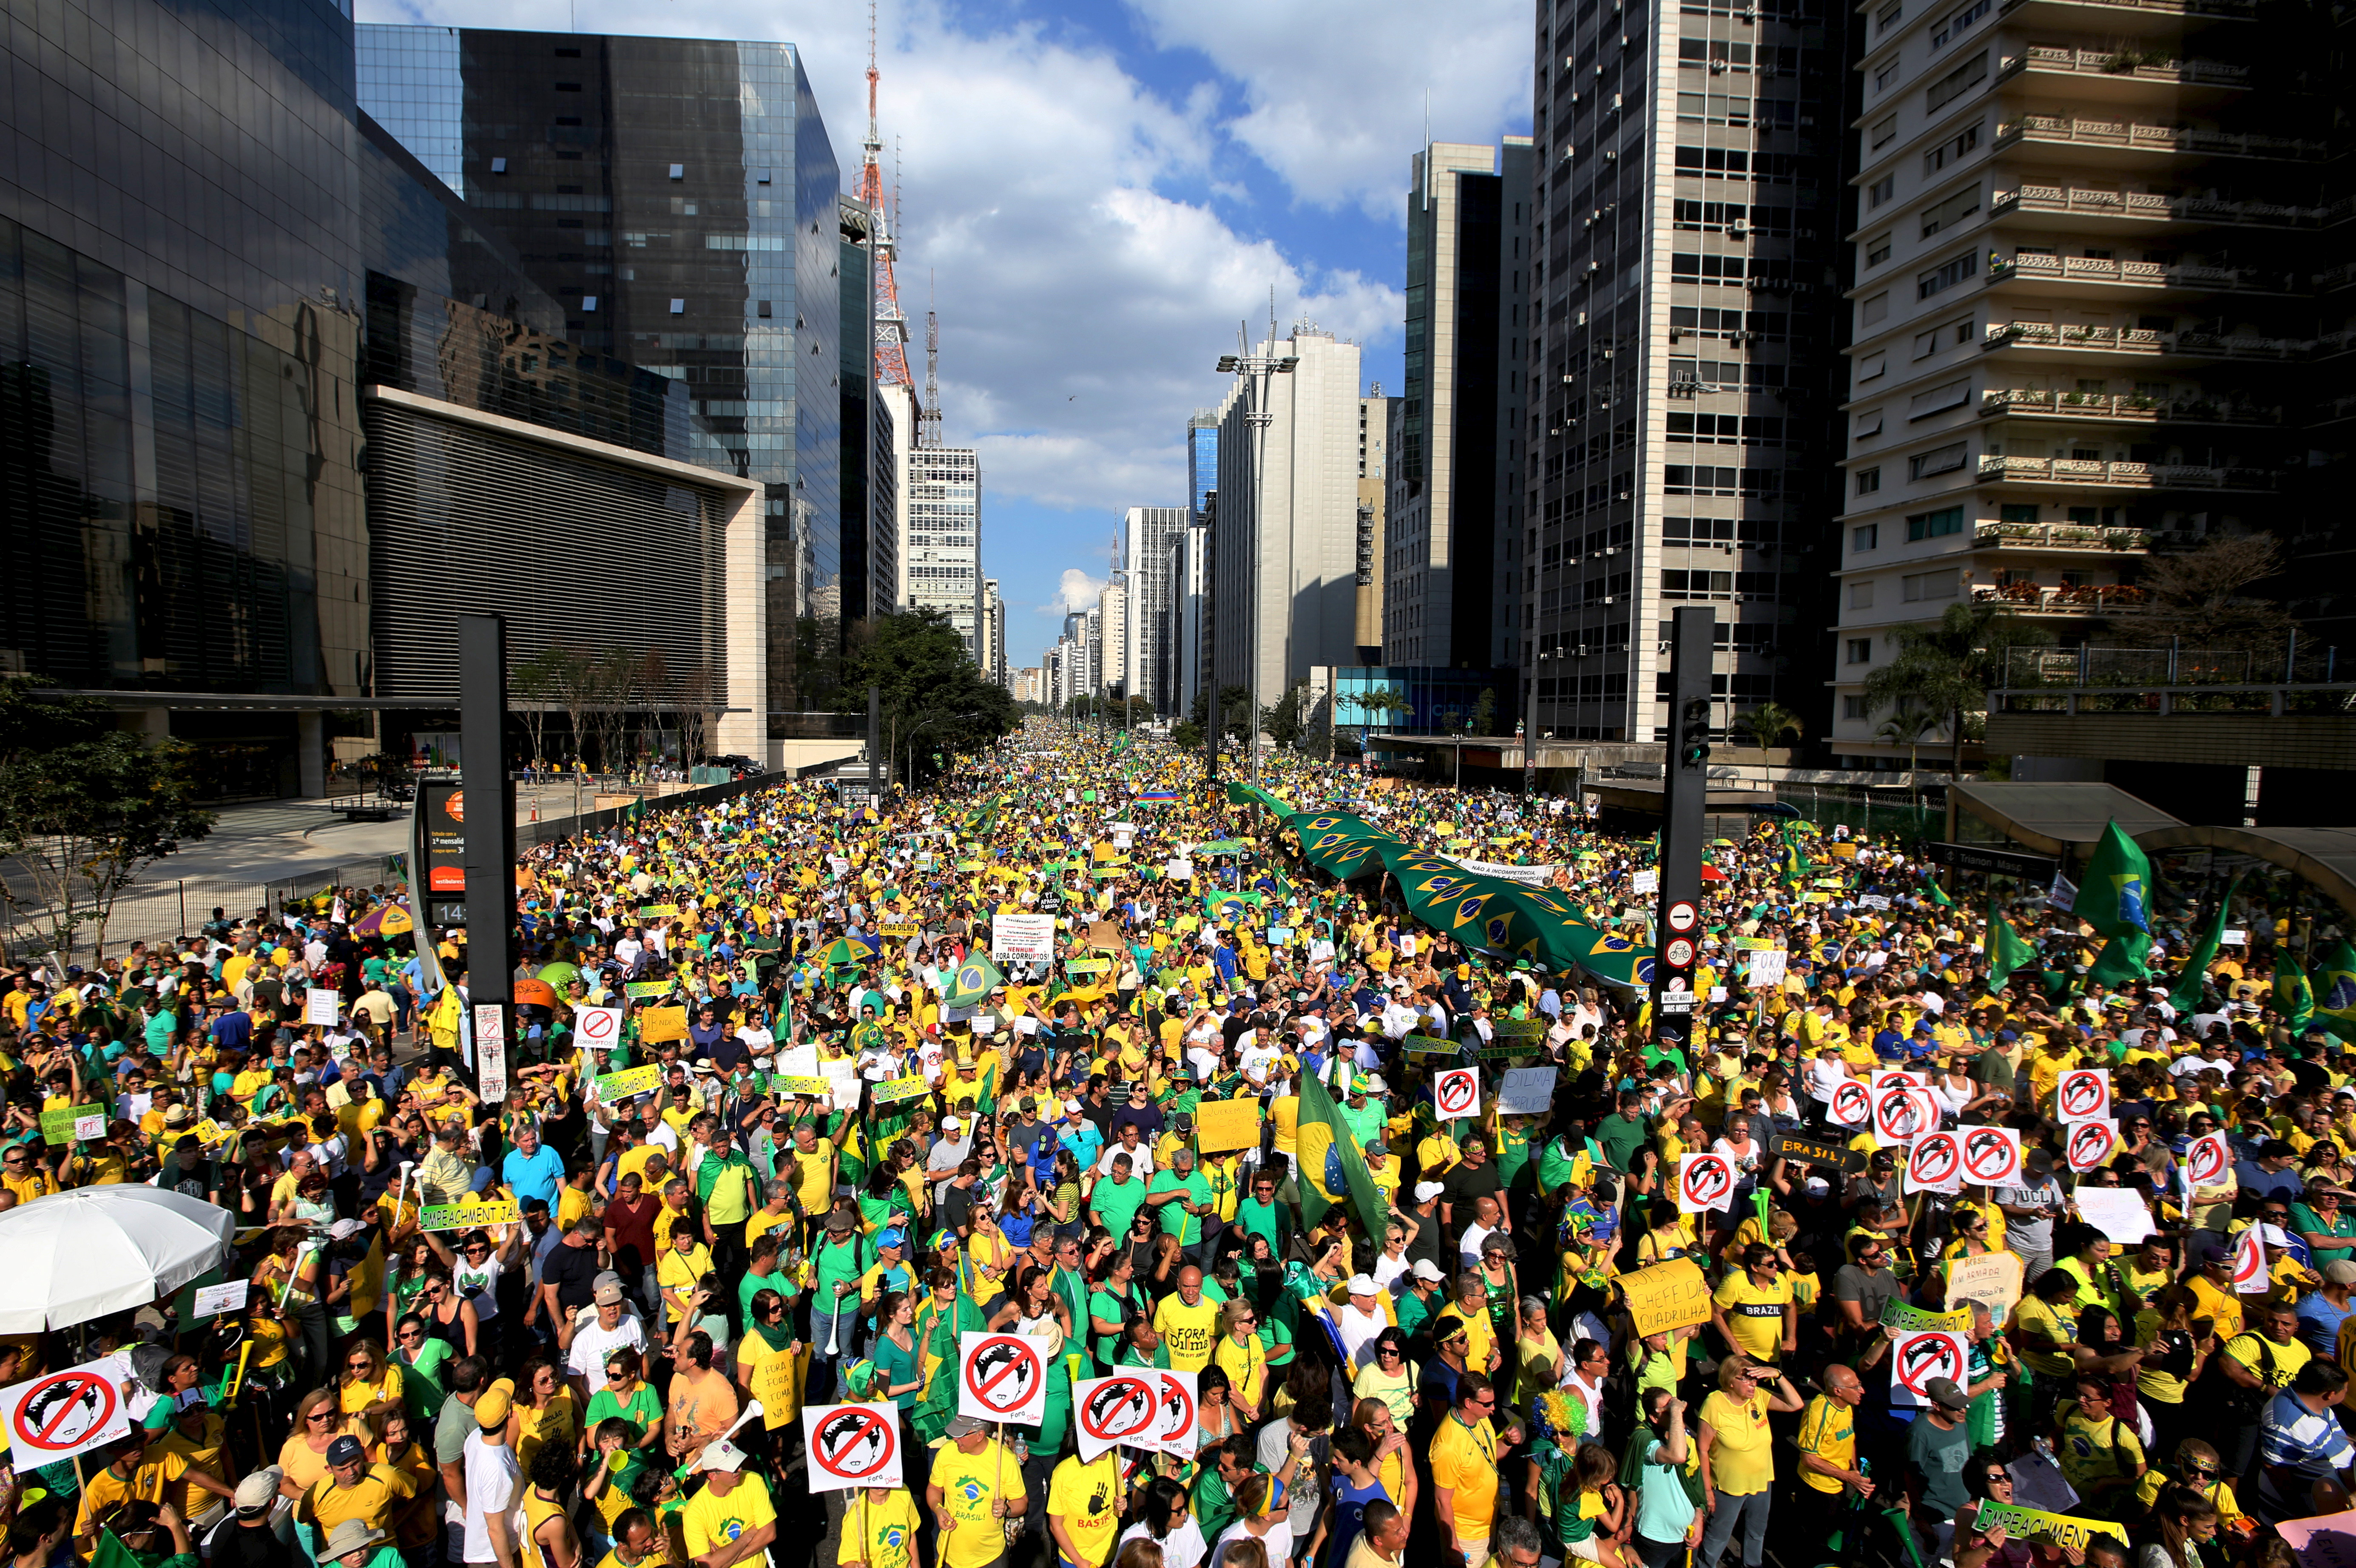 Demonstrators attend a protest against Brazil's President Dilma Rousseff, part of nationwide protests calling for her impeachment, at Paulista Avenue in Sao Paulo's financial centre, Brazil, August 16, 2015.